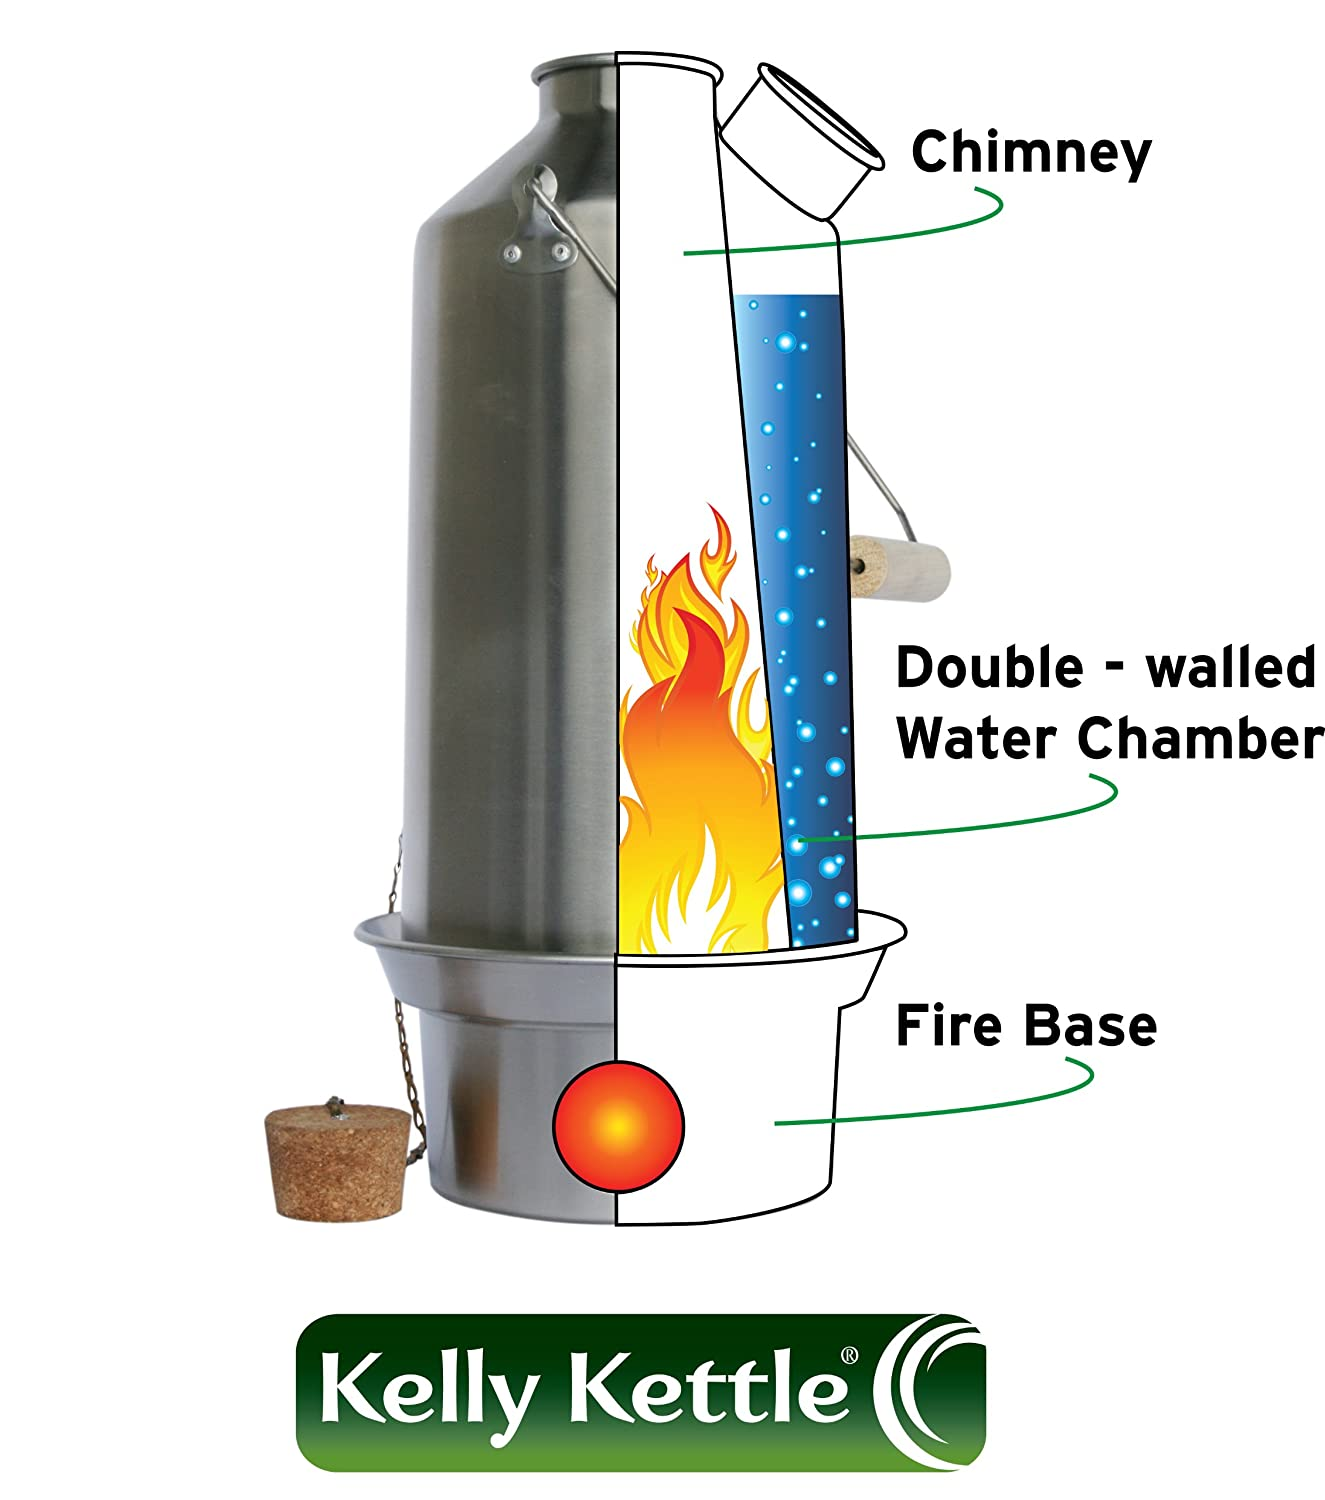 'Trekker' Kelly Kettle® - BASIC KIT (0.6ltr Aluminium Kettle + Steel Cook Set + Steel pot support) Camping Kettle and Camp Stove in one. Ultra fast lightweight wood fueled stove. No Batteries, No Gas, No Fuel costs! For trekking and hiking. Weight 0.84kg